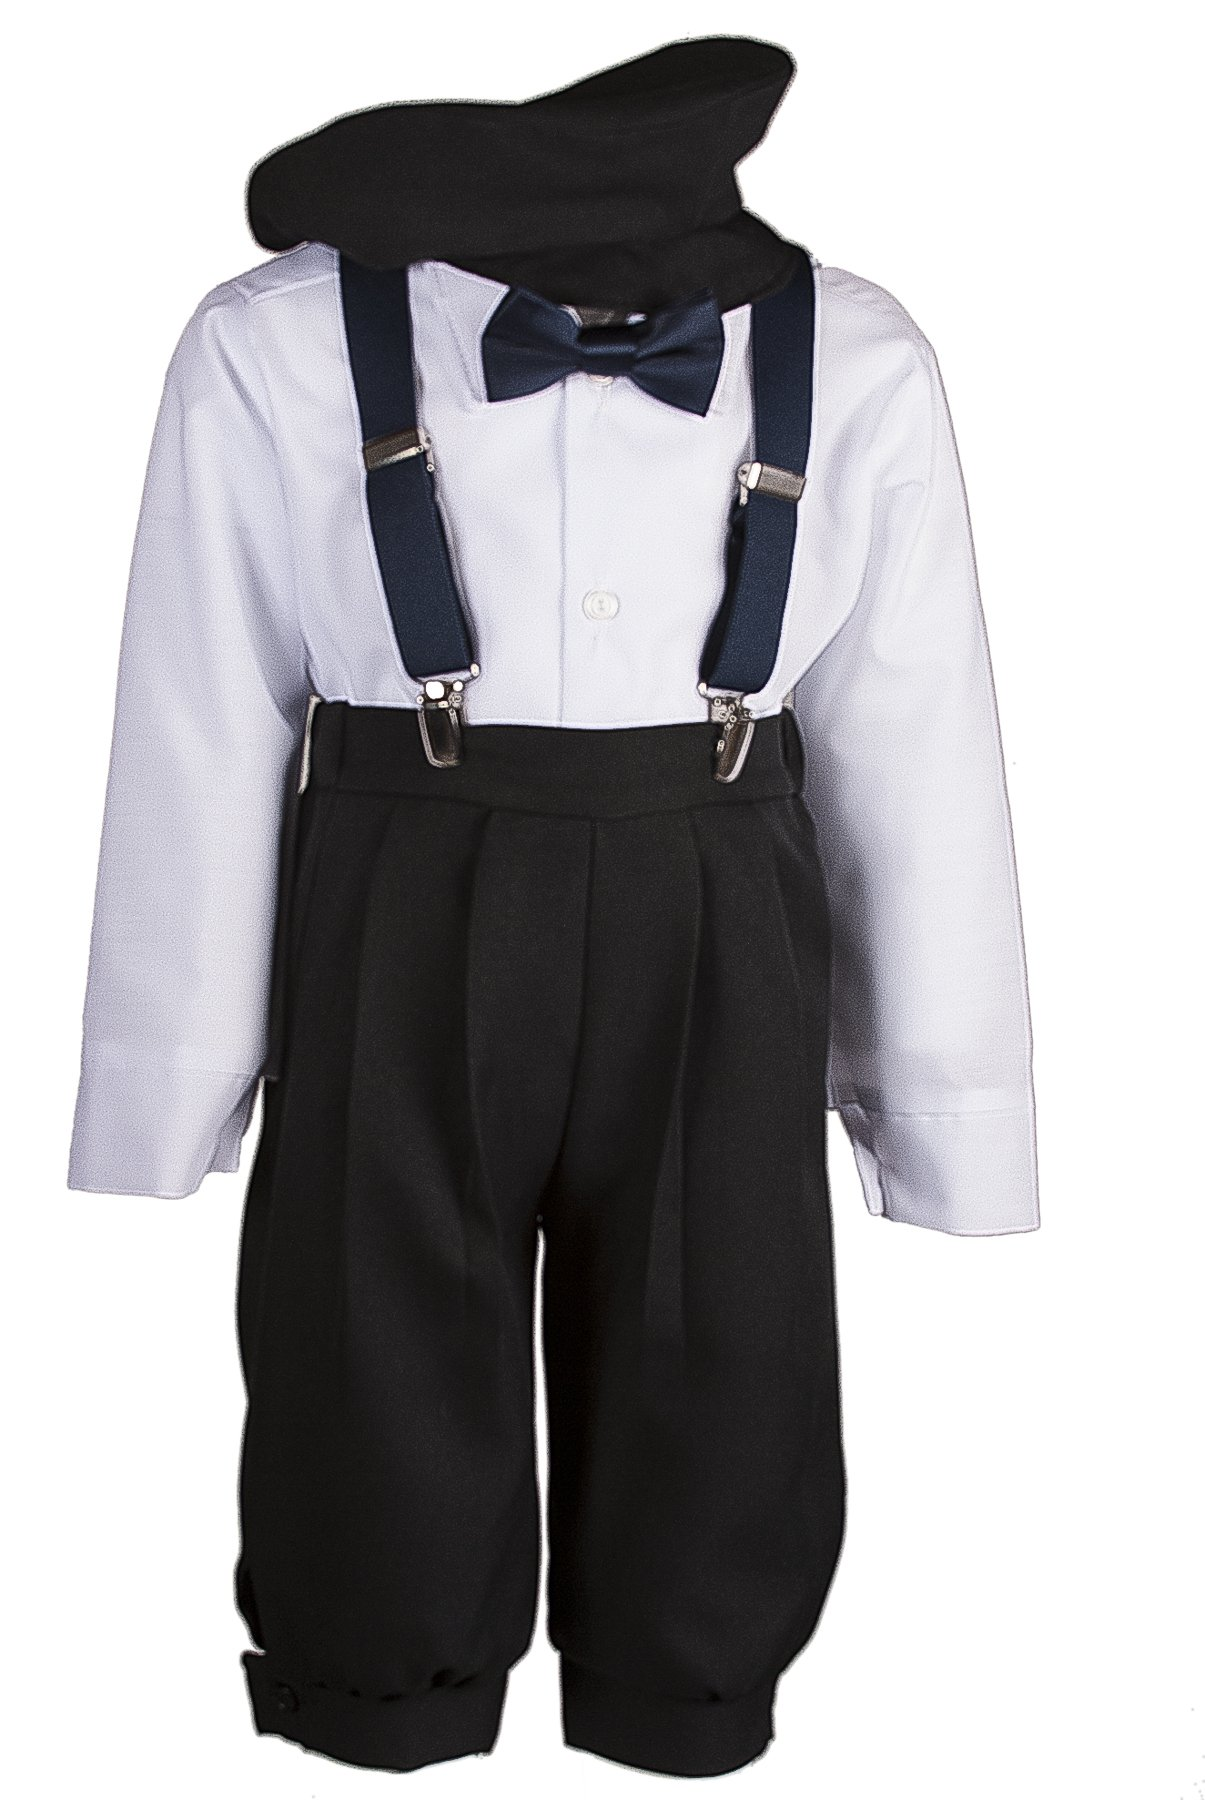 Boys Black Knickers Set Pageboy Cap Navy Blue Suspenders & Bow Tie (24 Months)